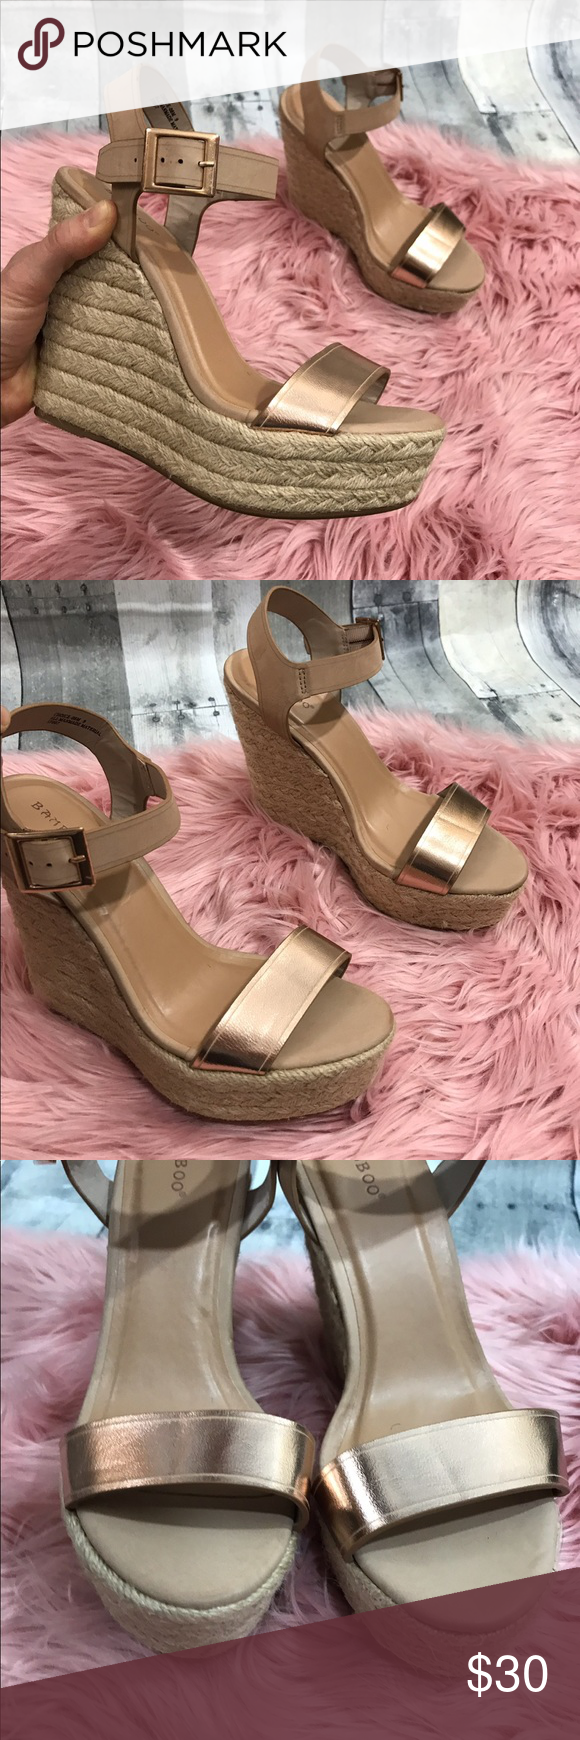 57cbfd65fbd Bamboo tan rose gold espadrilles Excellent used condition Only worn a  handful of times Tan